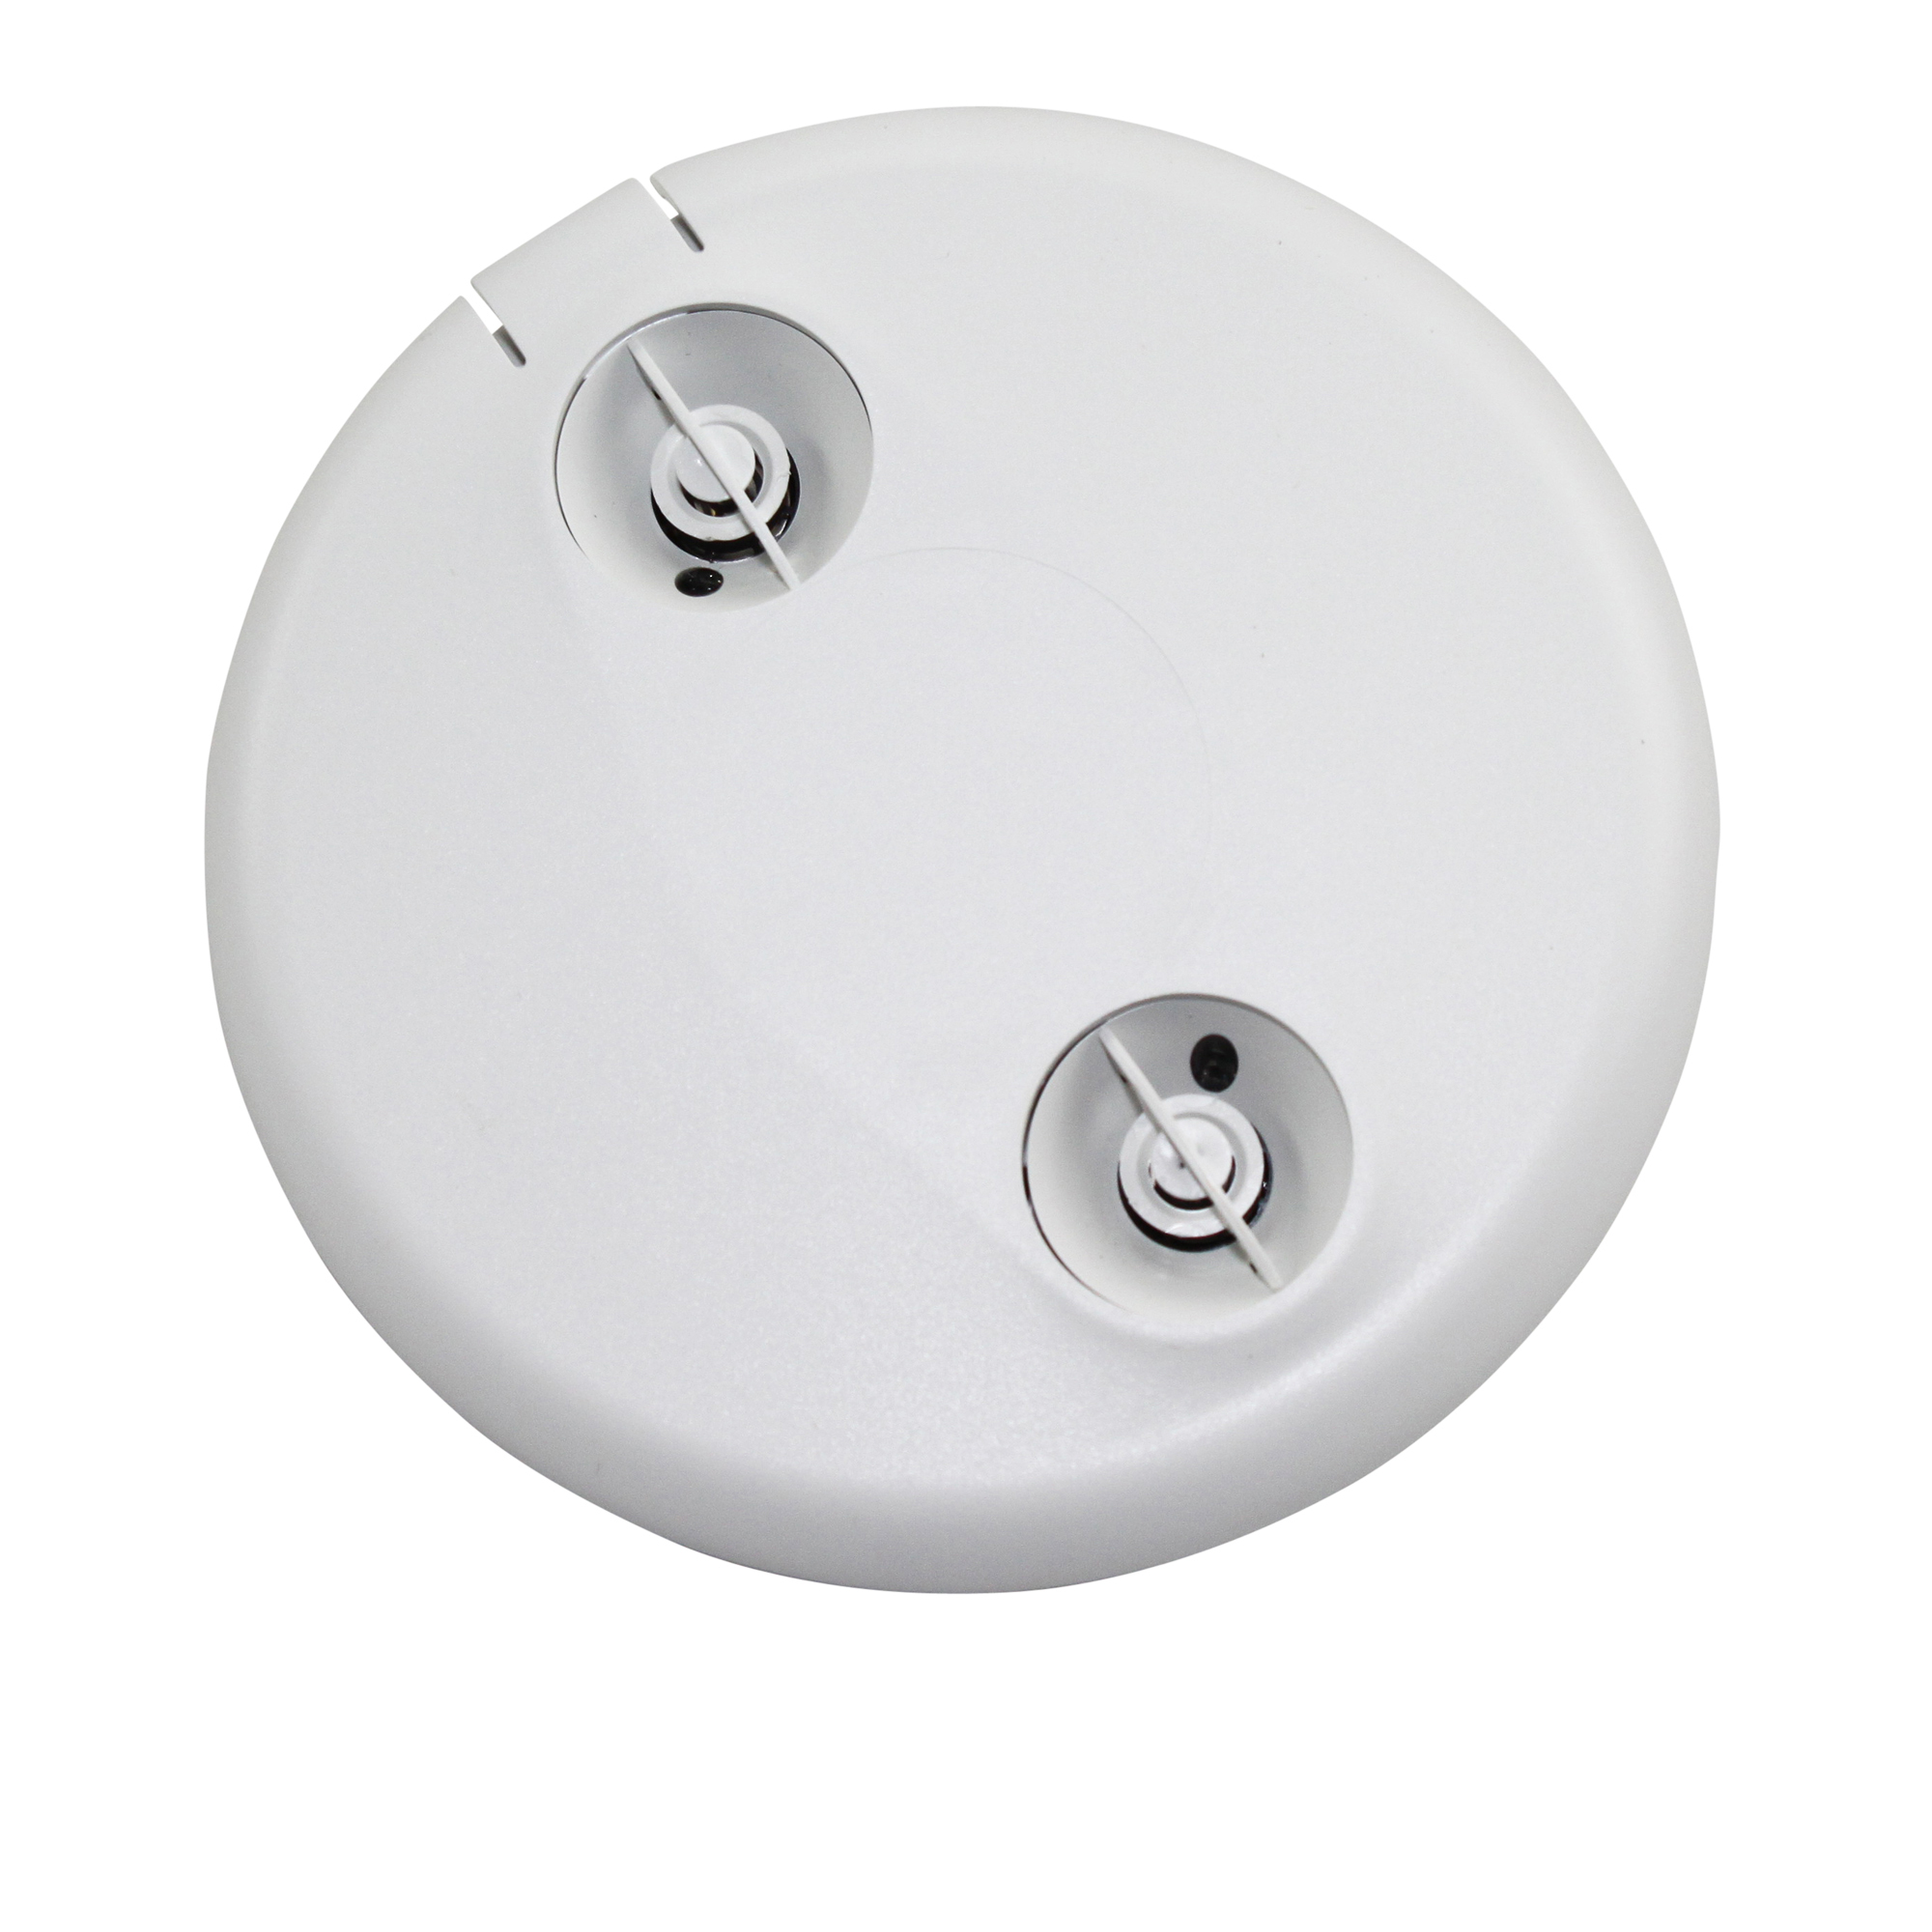 Wattstopper Occupancy Sensor Ceiling: WATTSTOPPER UT-355-3-W CEILING OCCUPANCY MOTION DETECTOR